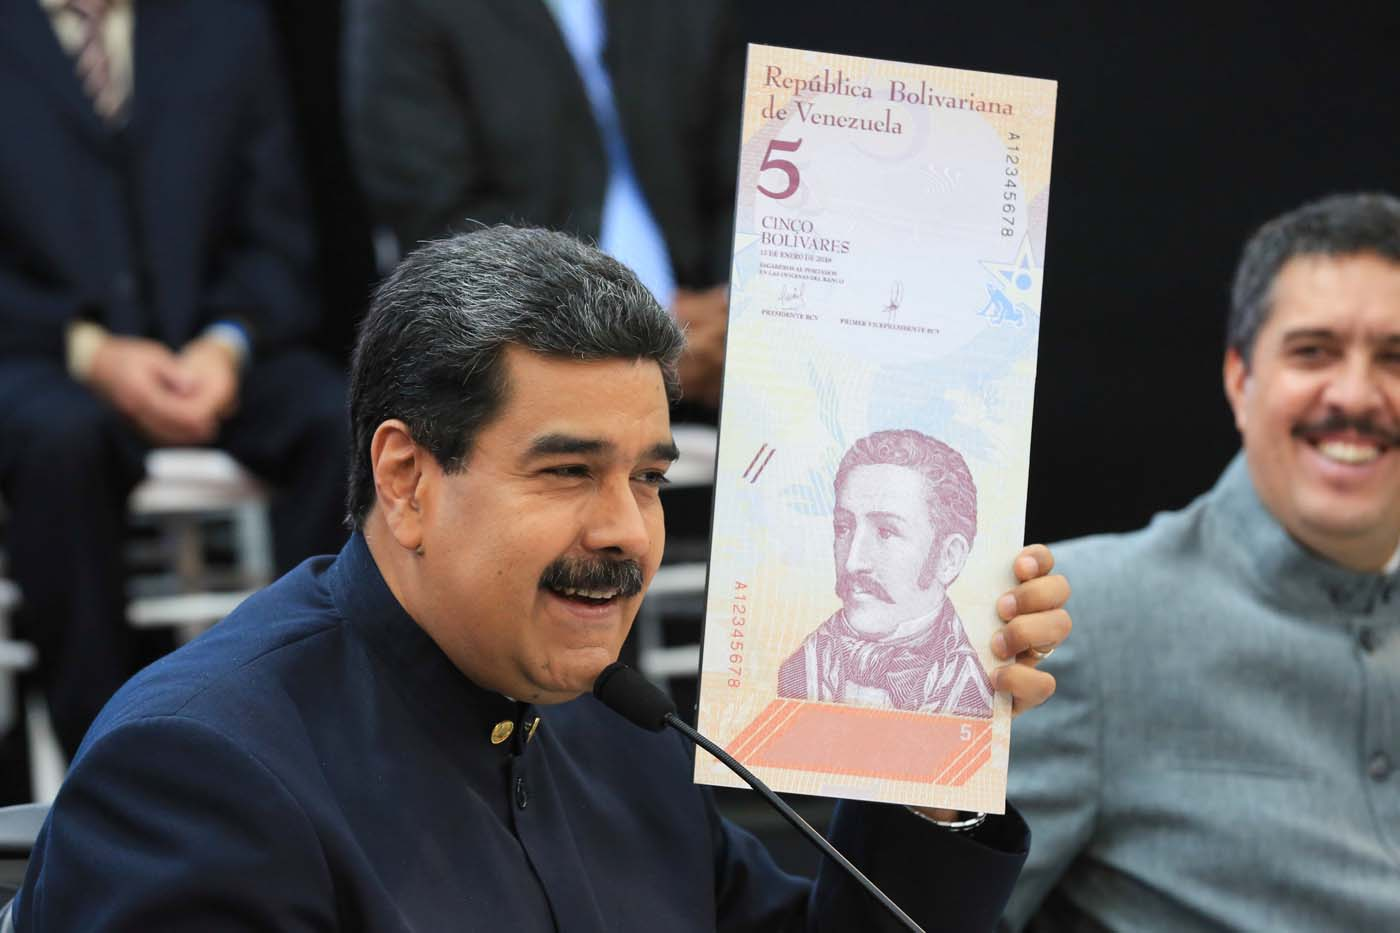 Venezuela's President Nicolas Maduro holds a specimen of the new five-bolivar banknote during a meeting with ministers responsible for the economic sector at Miraflores Palace in Caracas, Venezuela March 22, 2018. Miraflores Palace/Handout via REUTERS ATTENTION EDITORS - THIS PICTURE WAS PROVIDED BY A THIRD PARTY.